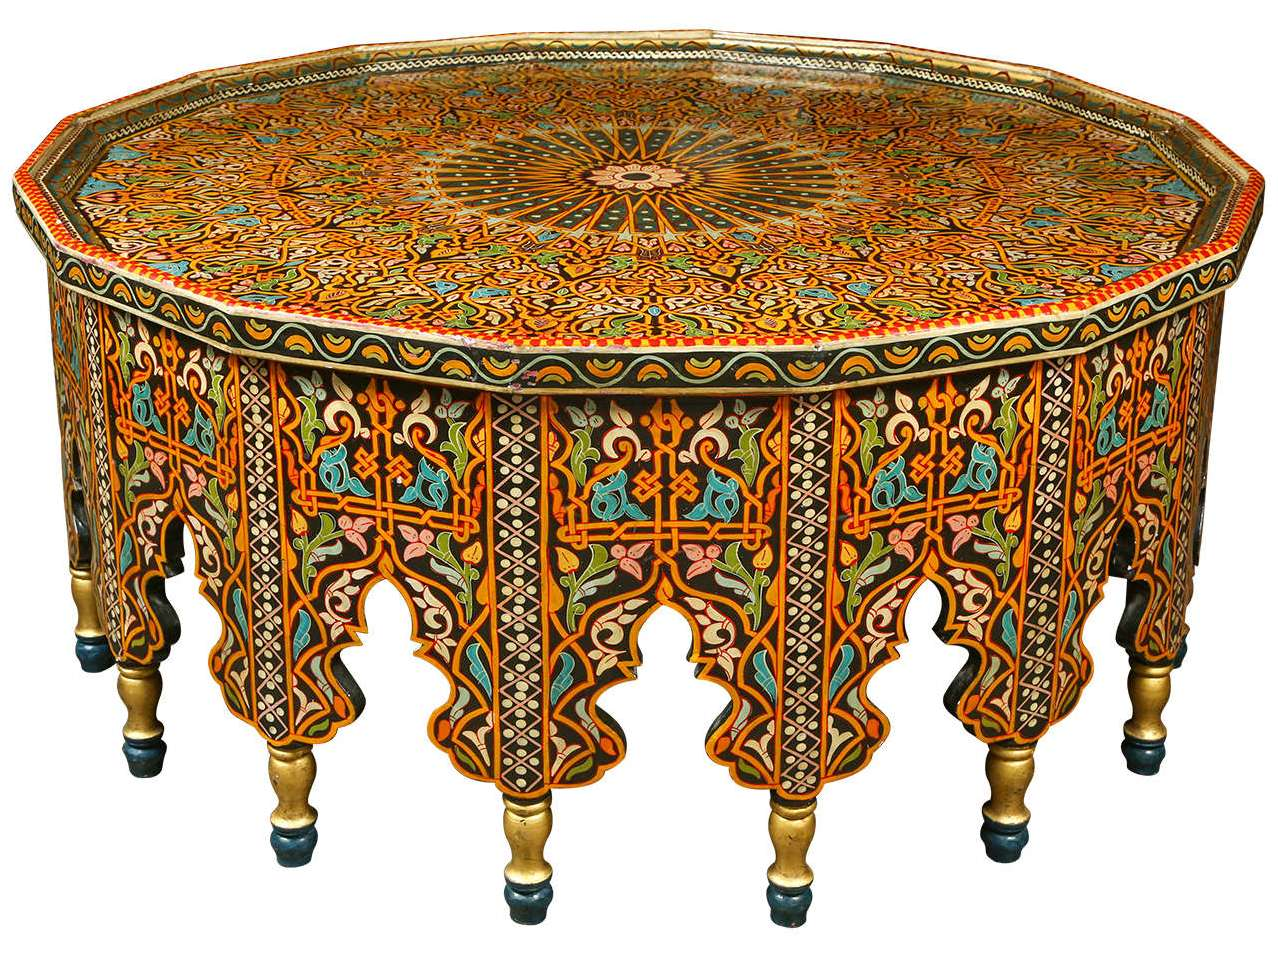 Round Moroccan Coffee Table Image And Description